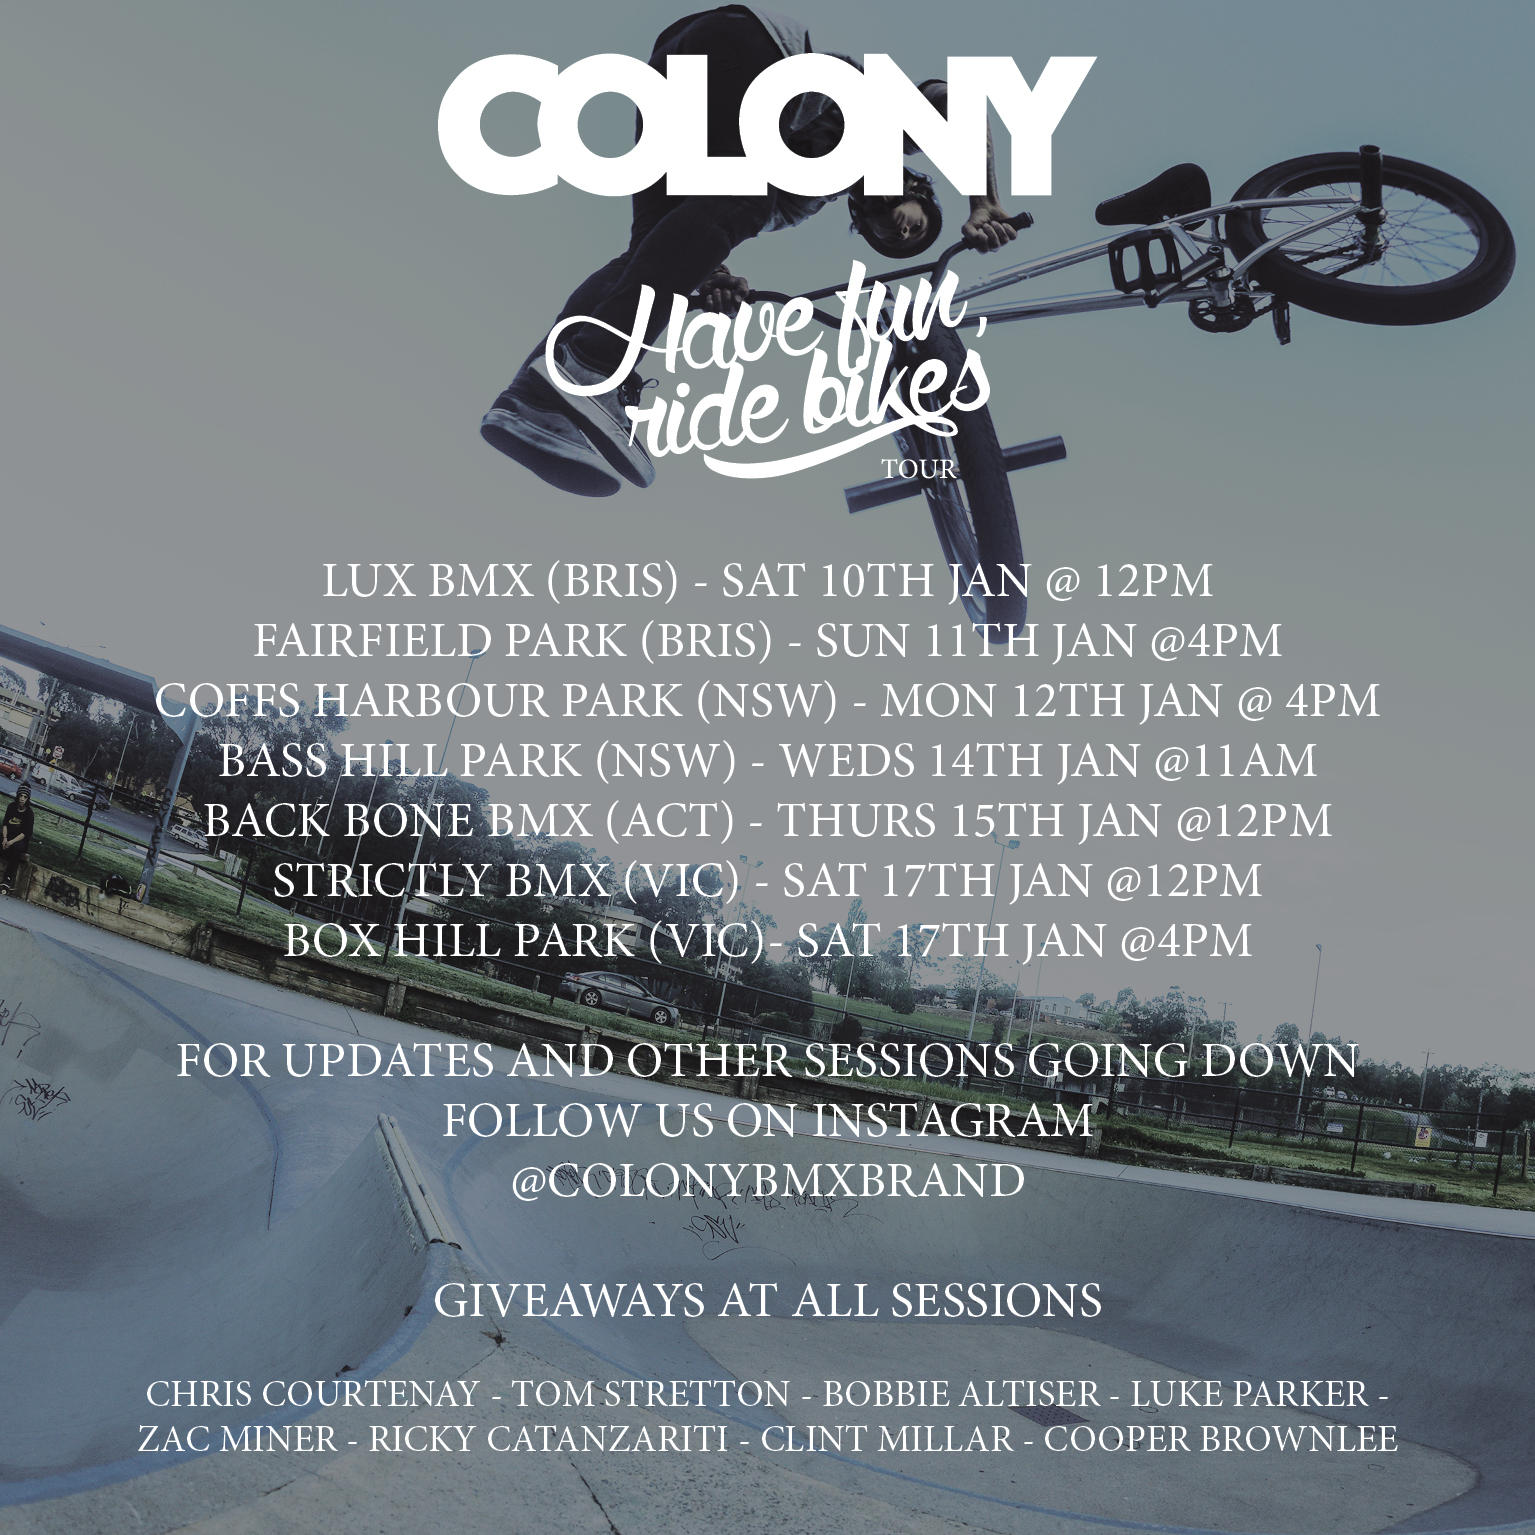 COLONY jan 2015 tour flyer